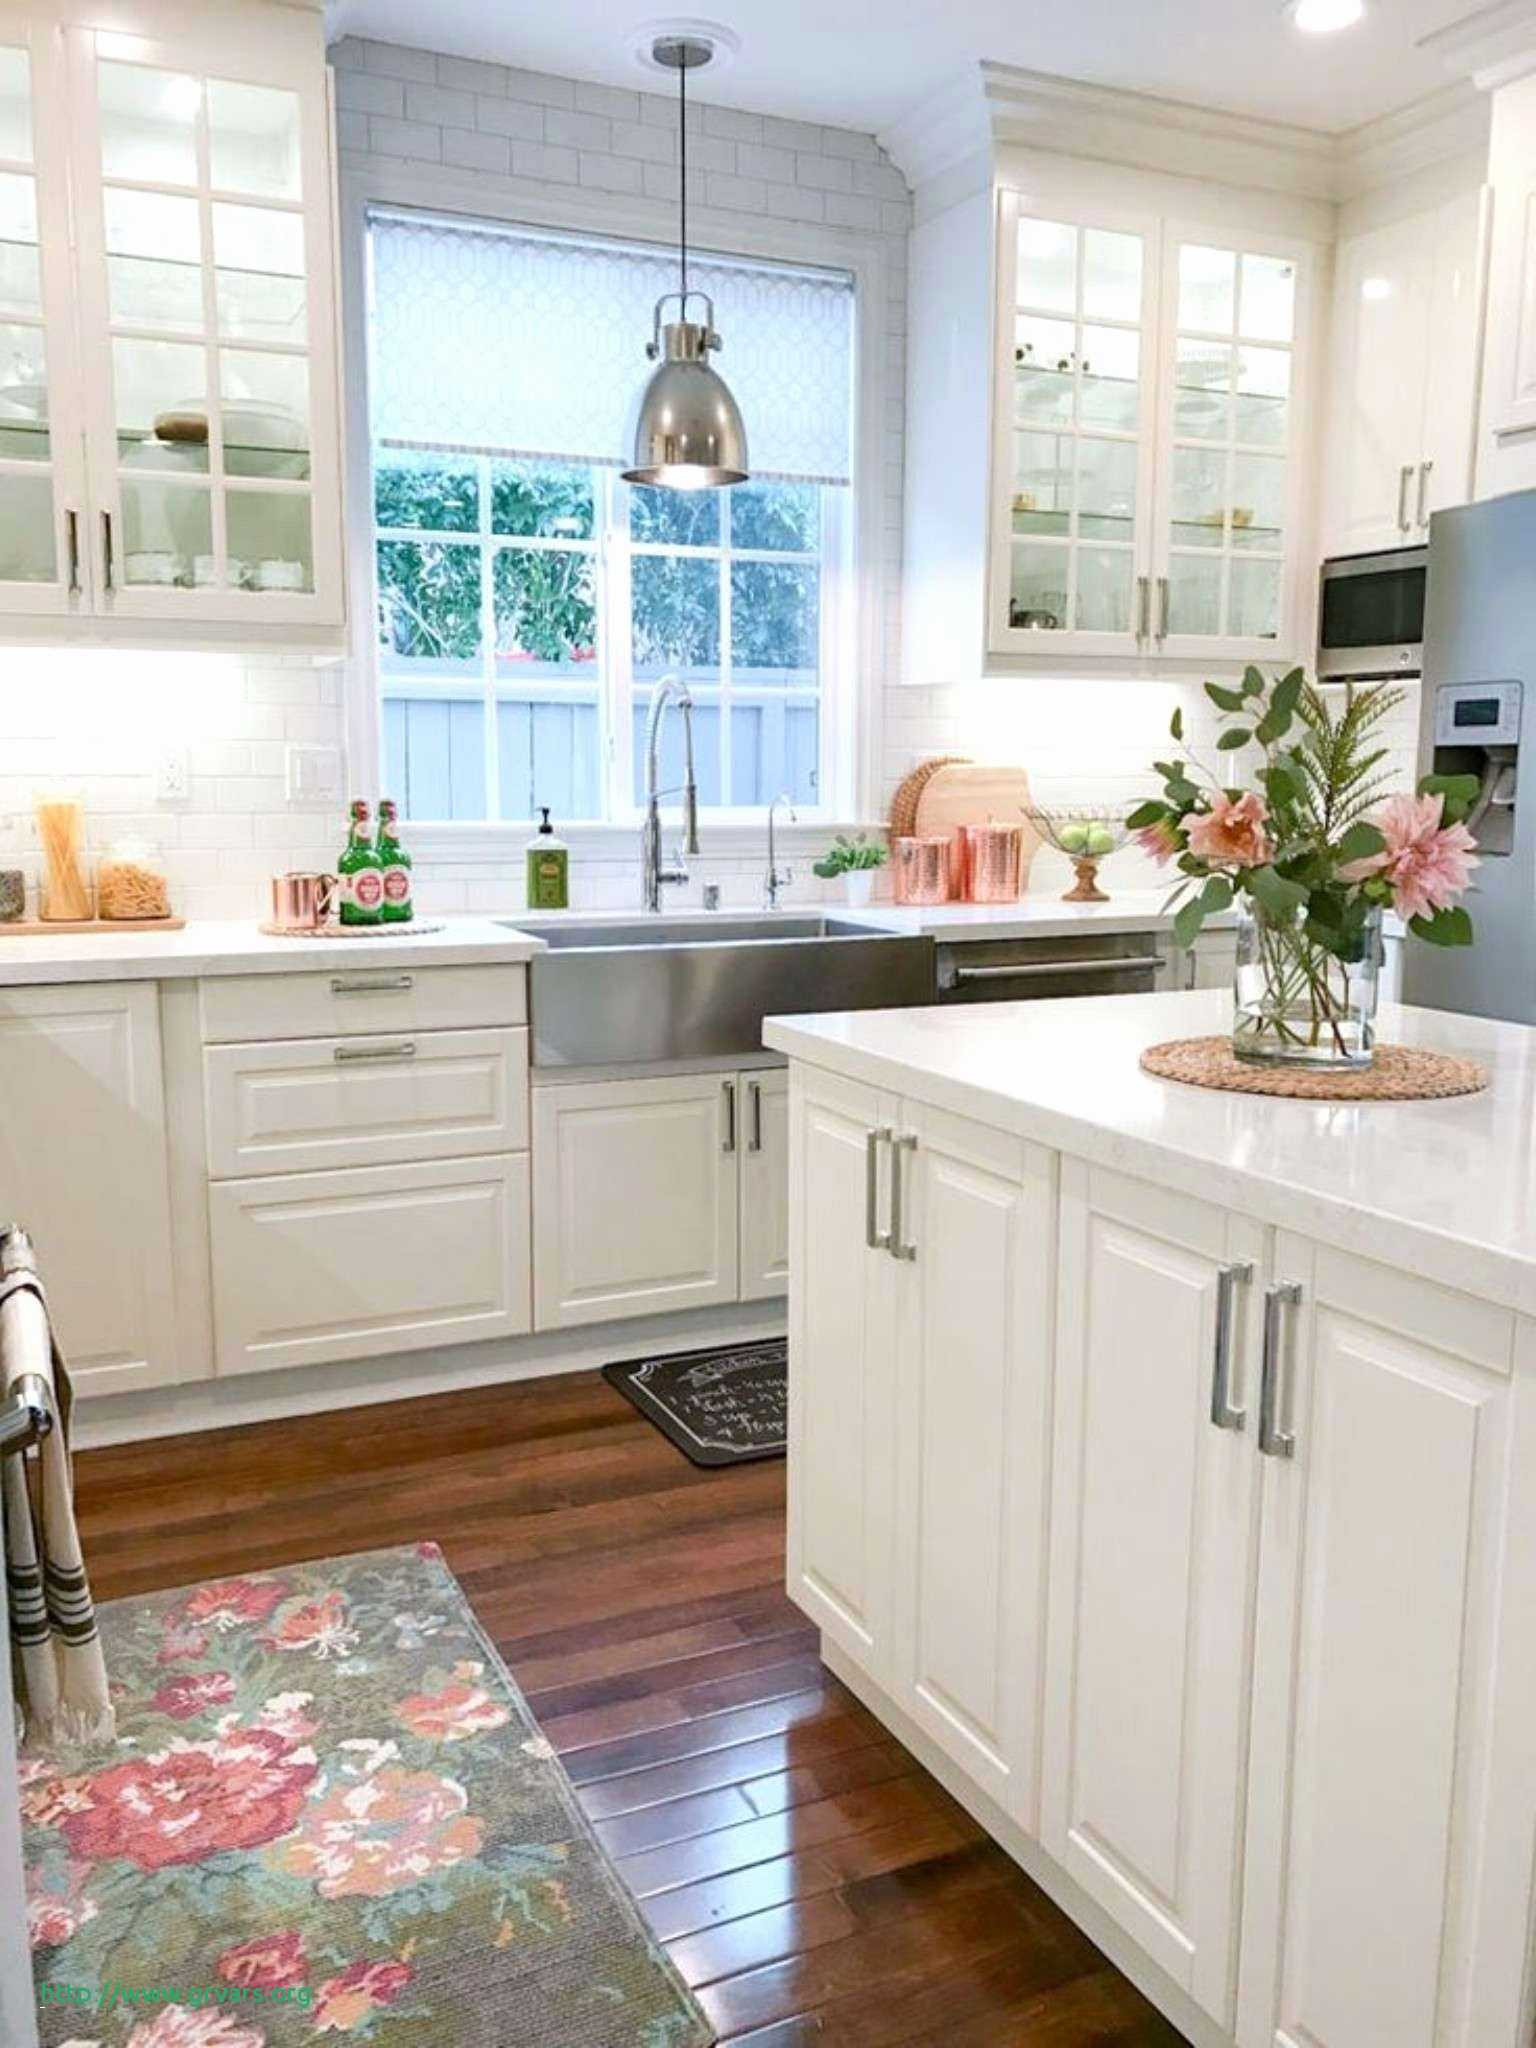 18 Trendy Painted Hardwood Floors before and after 2021 free download painted hardwood floors before and after of 22 charmant floor cover for painting ideas blog pertaining to light blue bedroom fresh kitchen cabinets fresh kitchen cabinet 0d from kitchen cabi